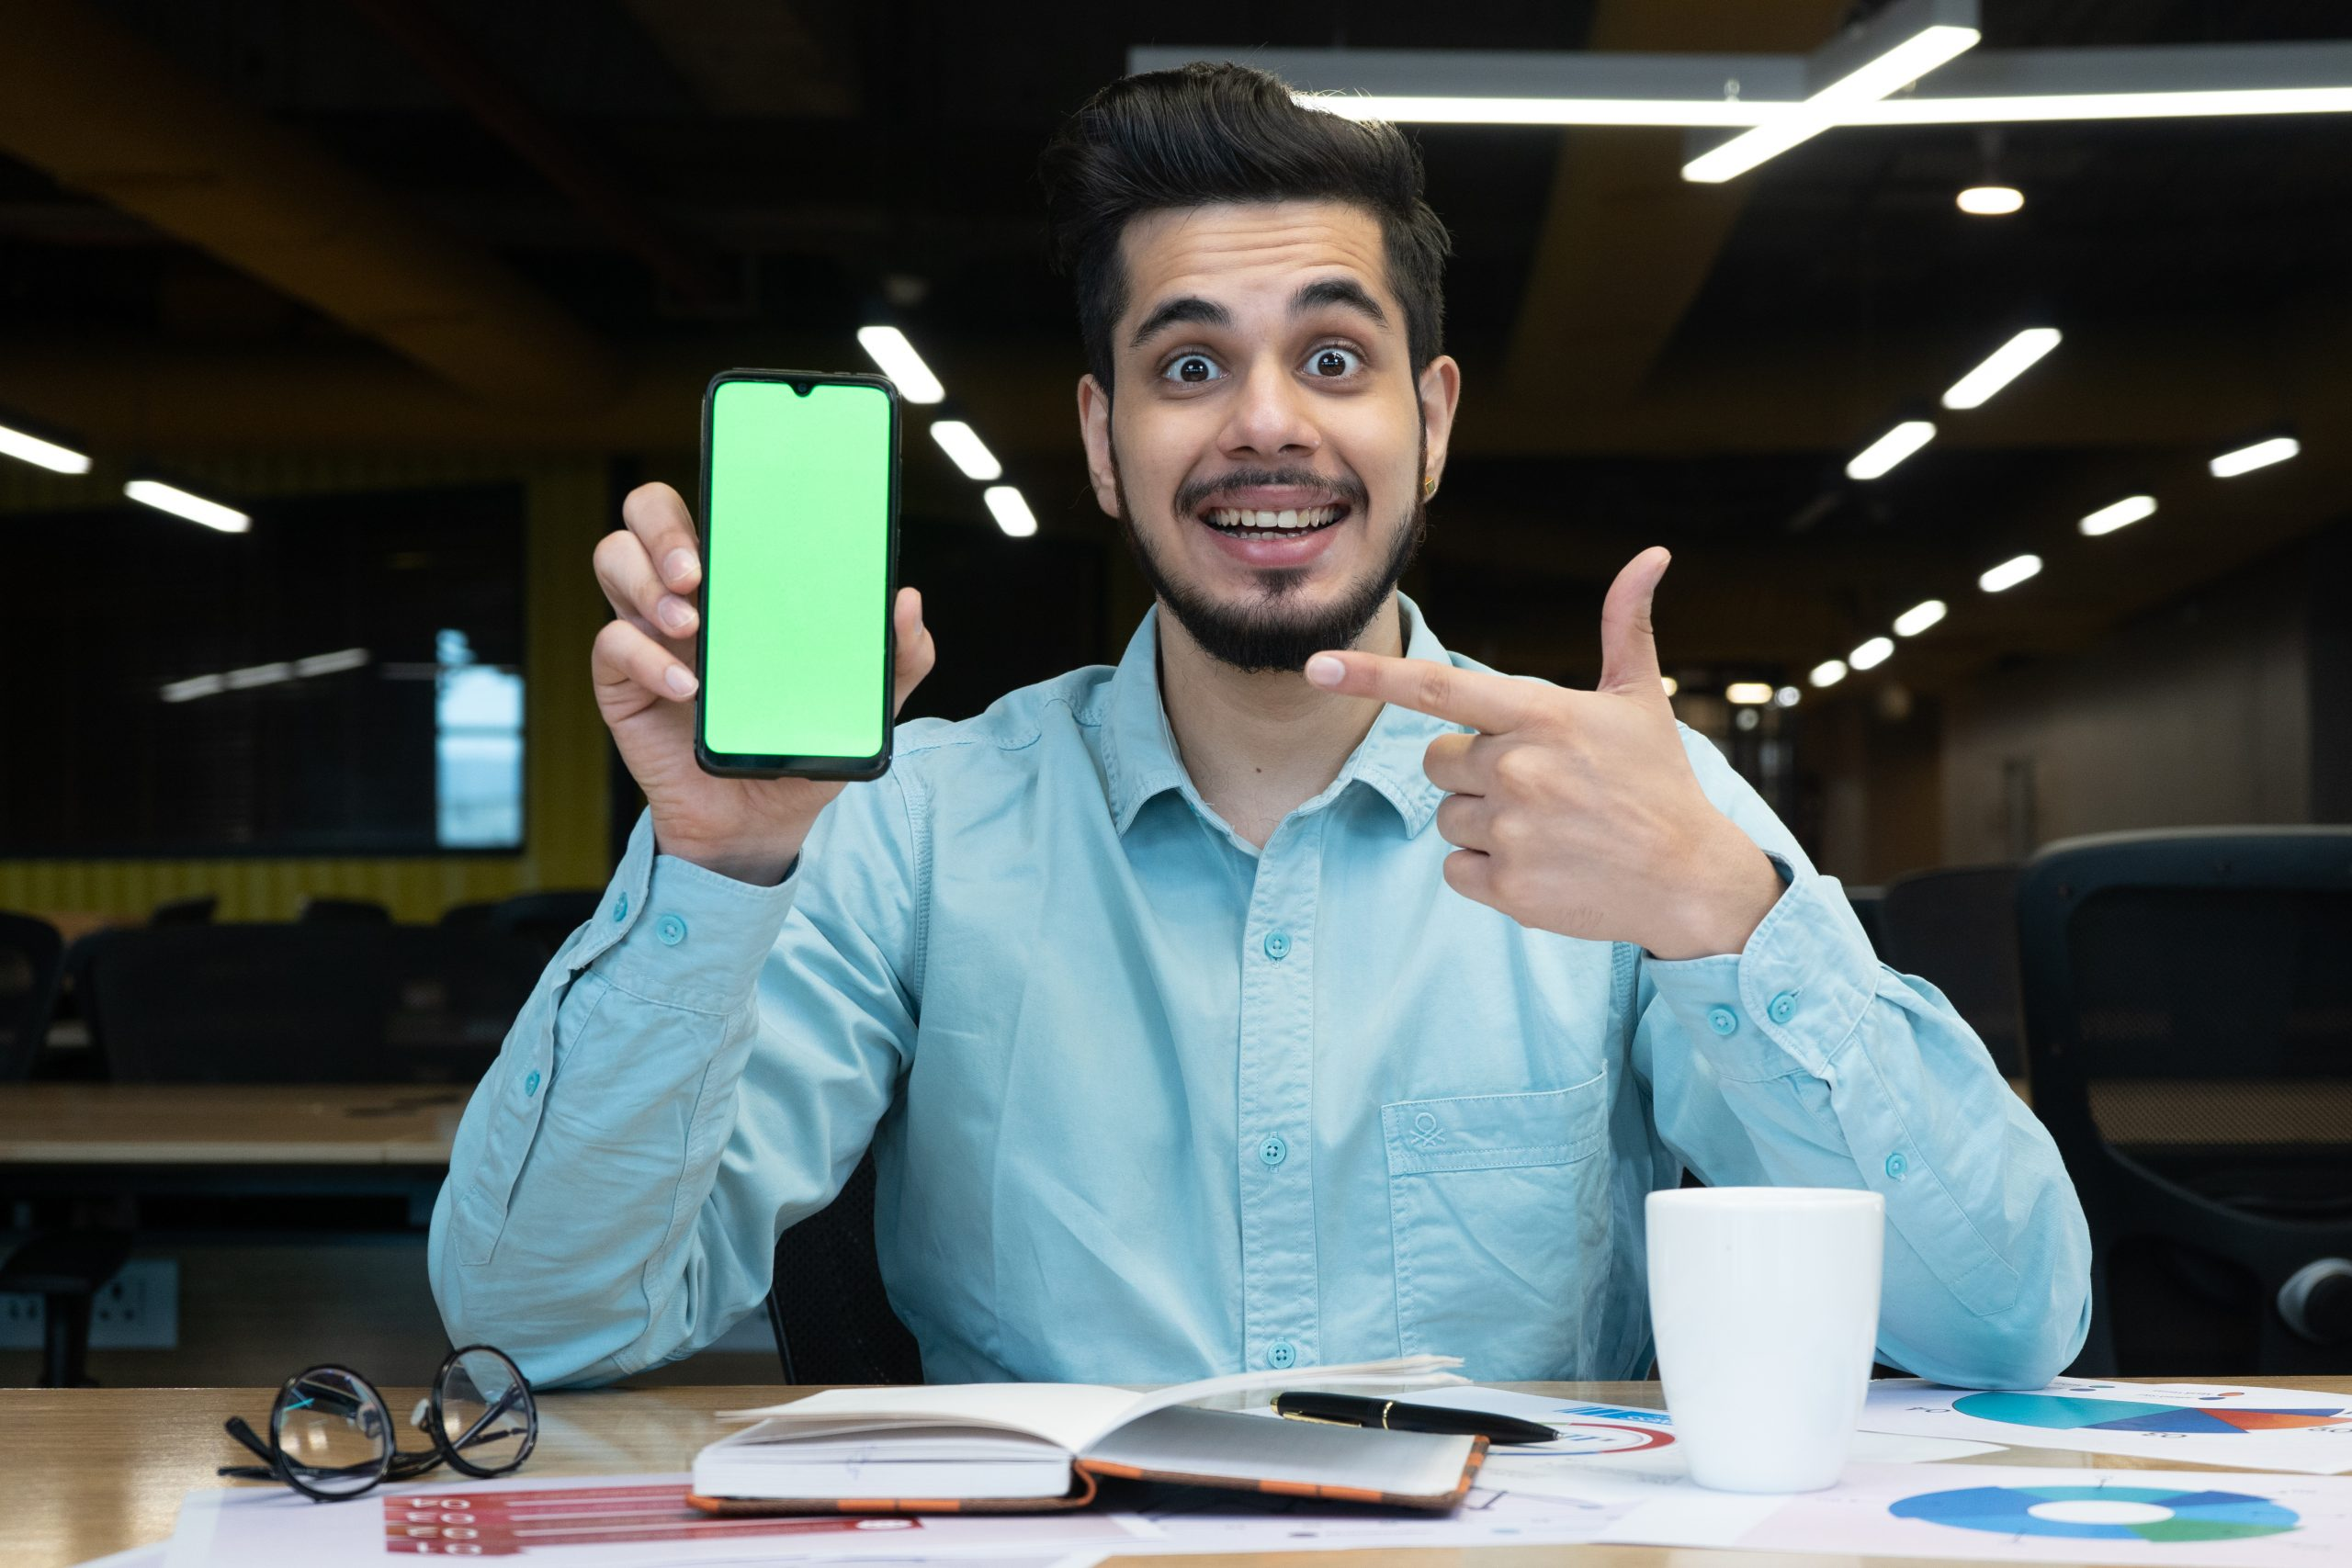 Excited man pointing towards mobile screen